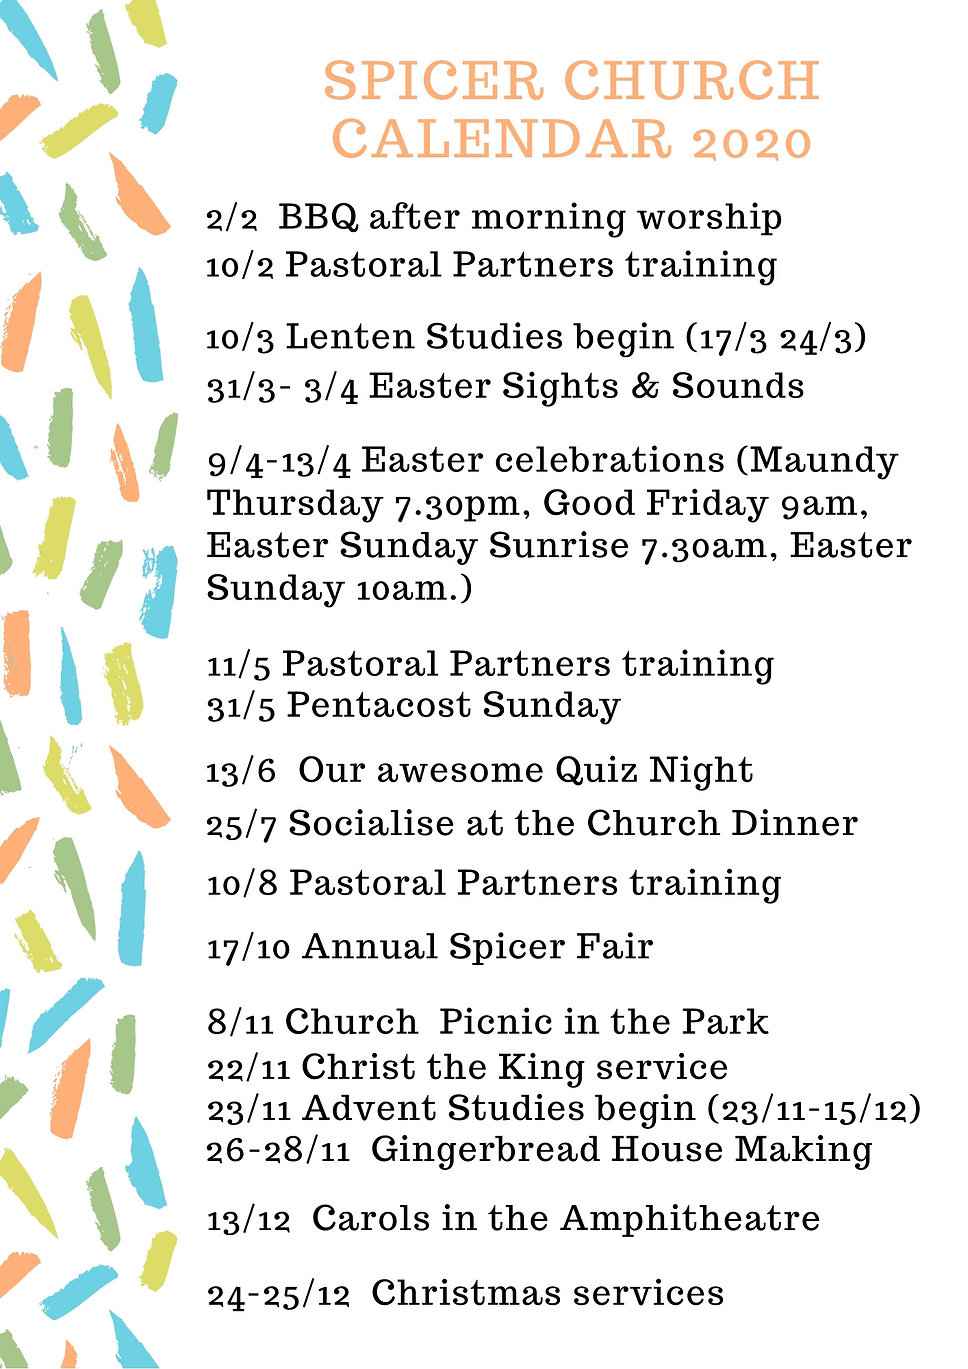 Spicer Church Calendar.jpg